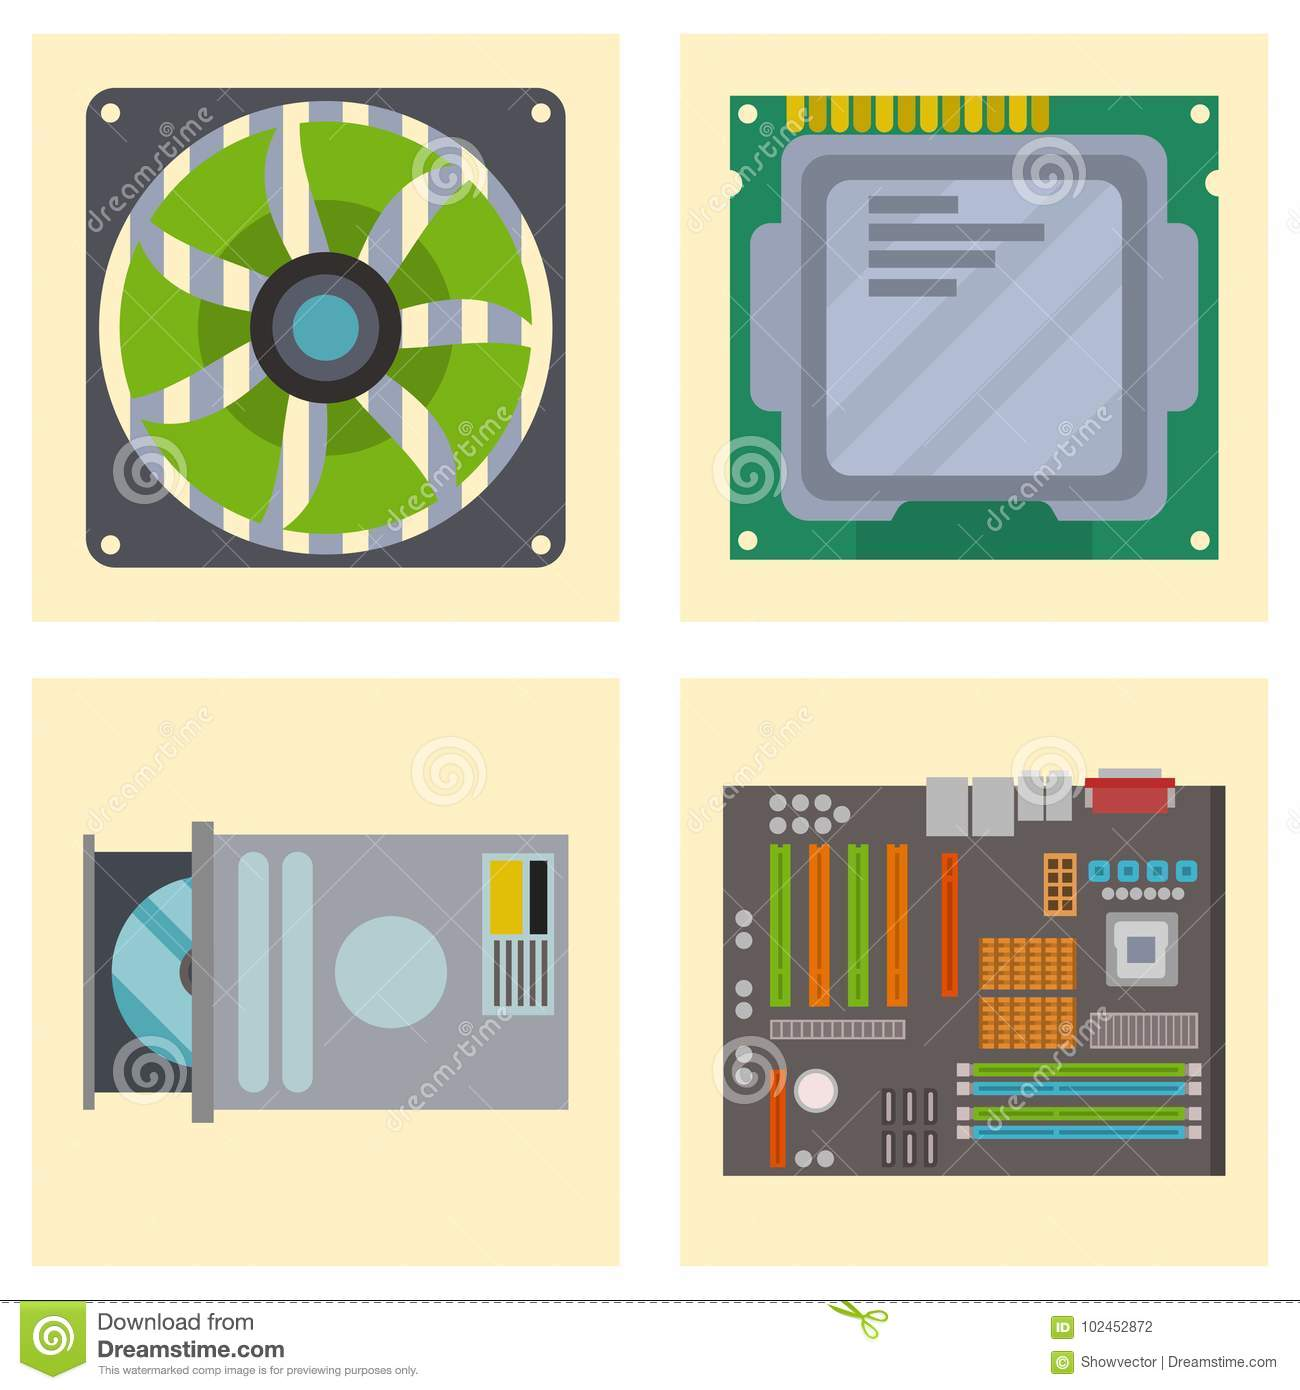 Computer Ic Chip Template Microchip On Detailed Printed Circuit Board Infographic Design Abstract Background Vector Illustration